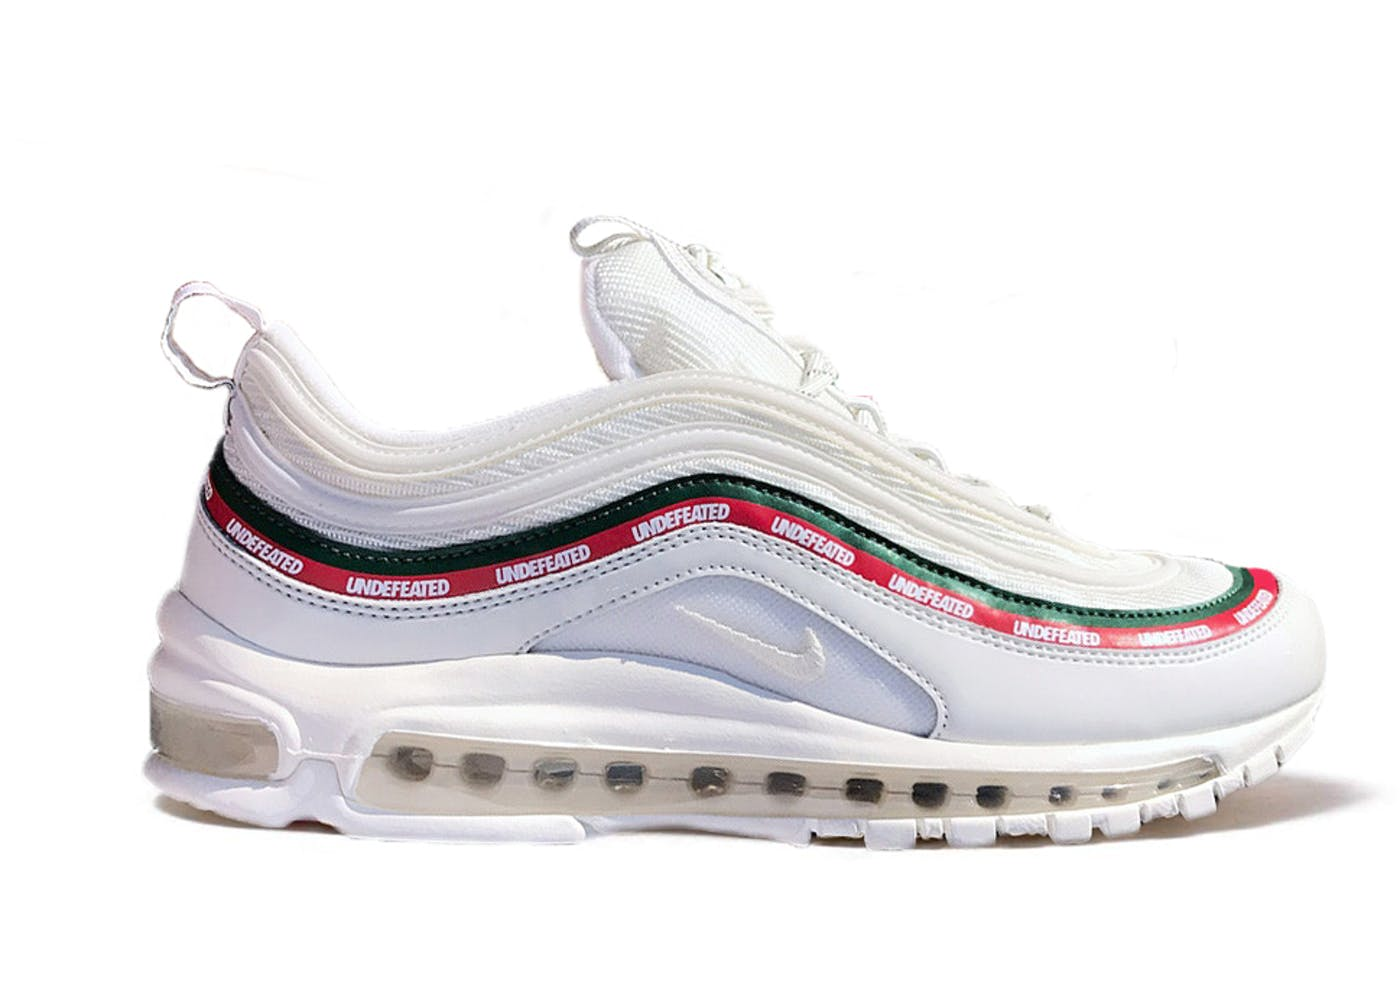 77a2aabfb08 The Cheap Air Max 97 and the Cheap Air Max Plus Swap Tooling for Two New